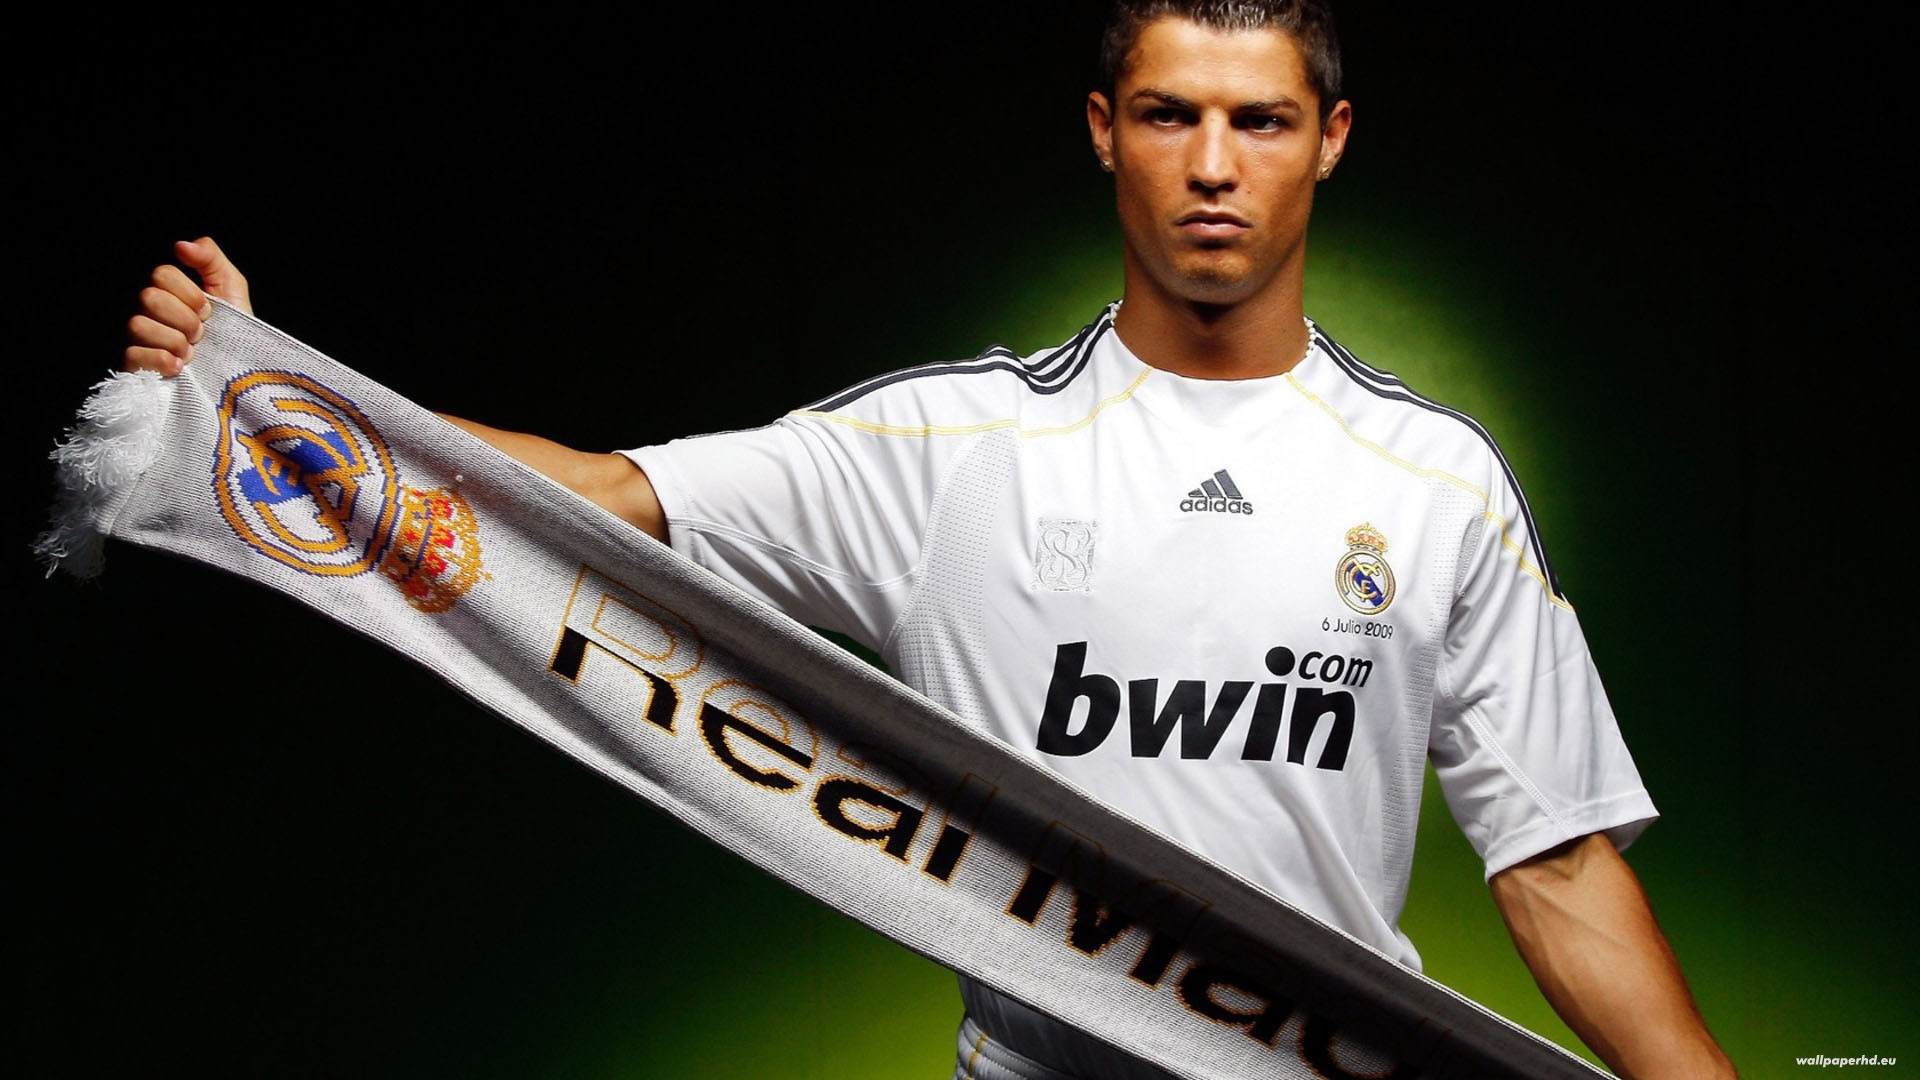 1920x1080 Cristiano Ronaldo with Real Madrid scarf wallpaper